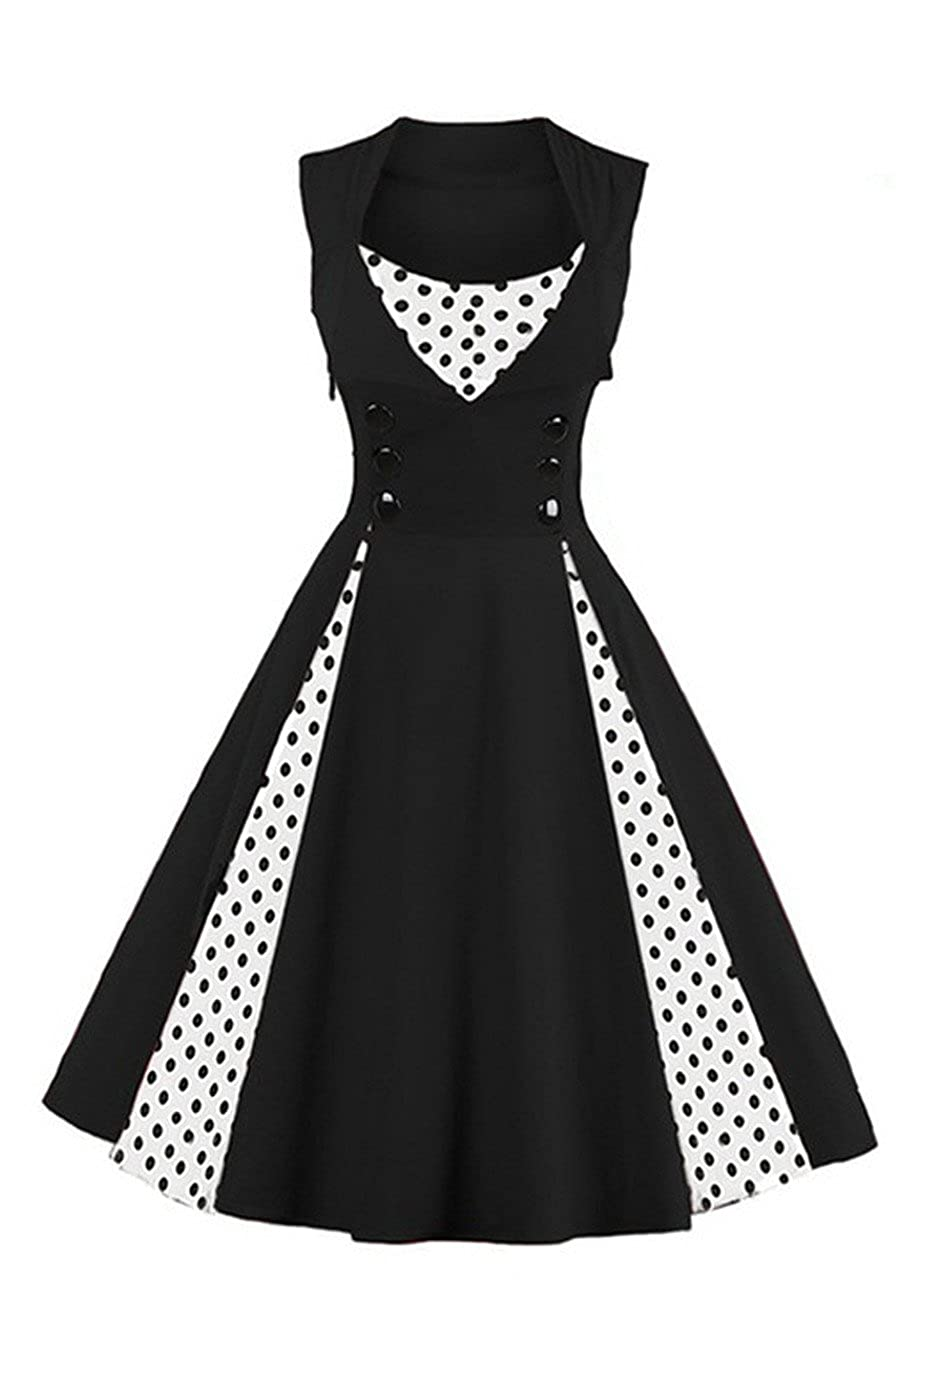 TALLA L. VERNASSA 50s Vestidos Vintage,Mujeres 1950s Vintage A-Line Rockabilly Clásico Verano Dress for Evening Party Cocktail, S-Plus Size 4XL 1357-puntos Negros